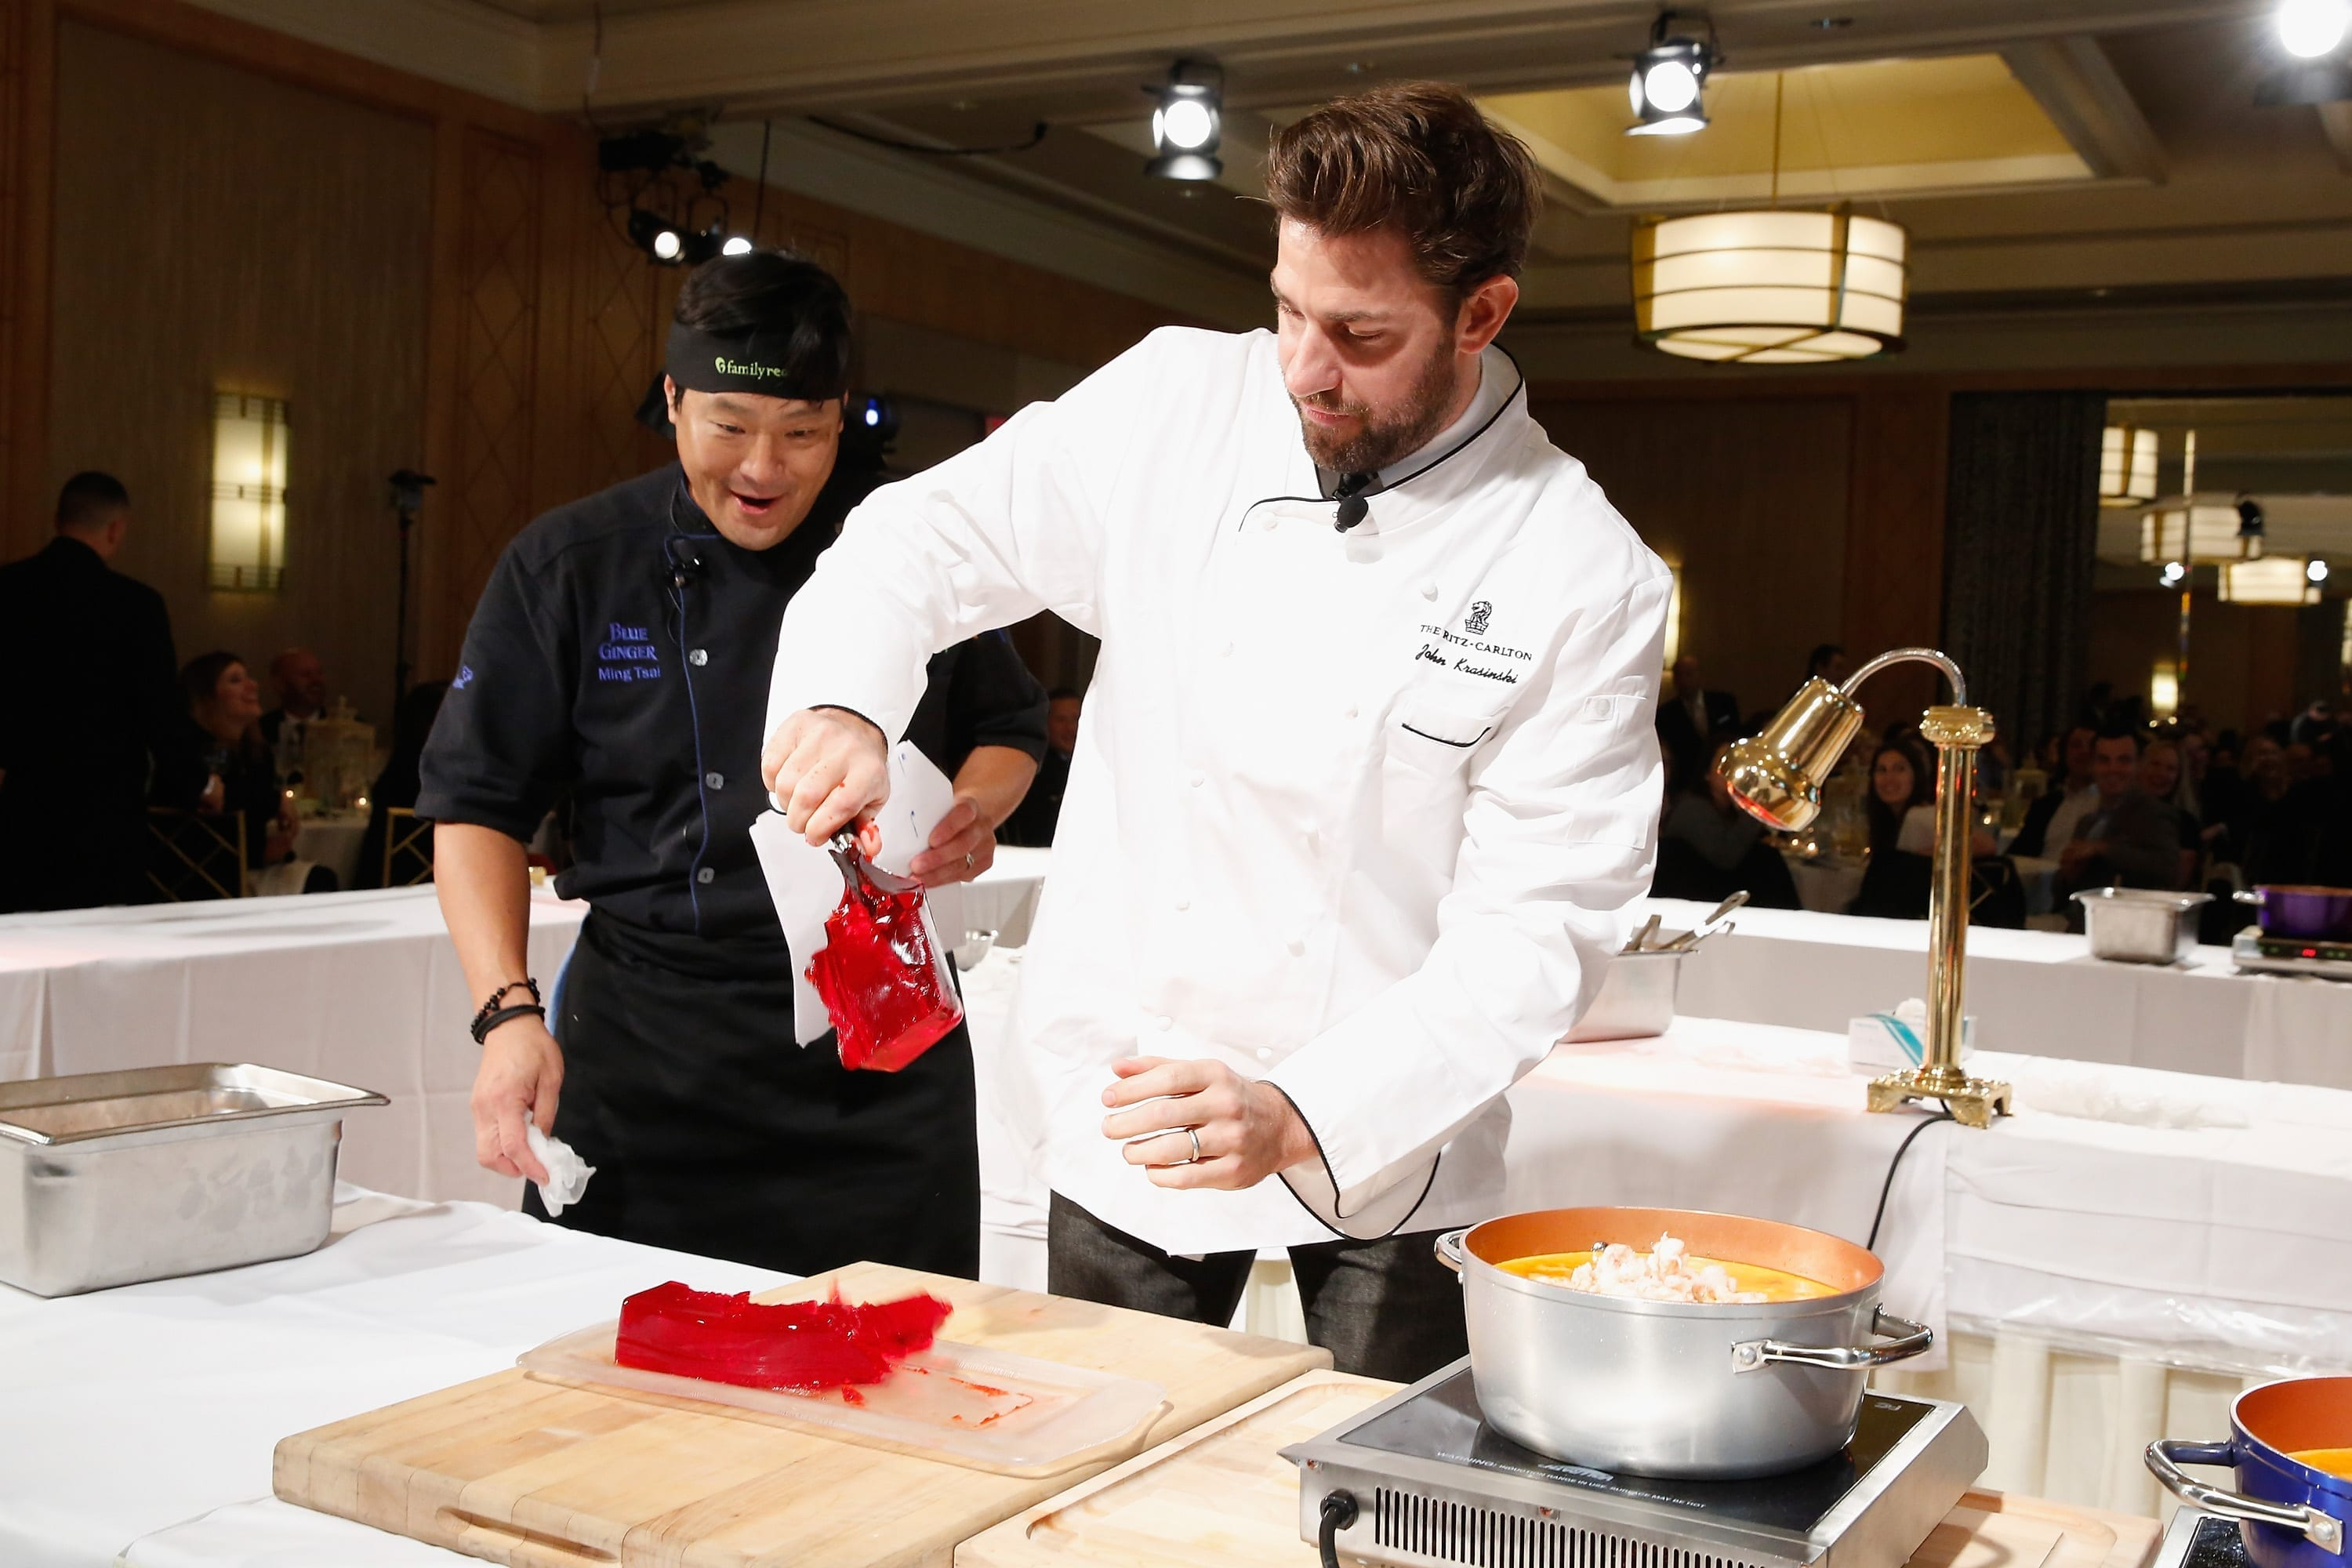 Family Reach's Cooking Live From New York: Emily Blunt & John Krasinski Join Celebrity Chefs Ming Tsai, Morimoto, To Help Families Fighting Pediatric Cancer